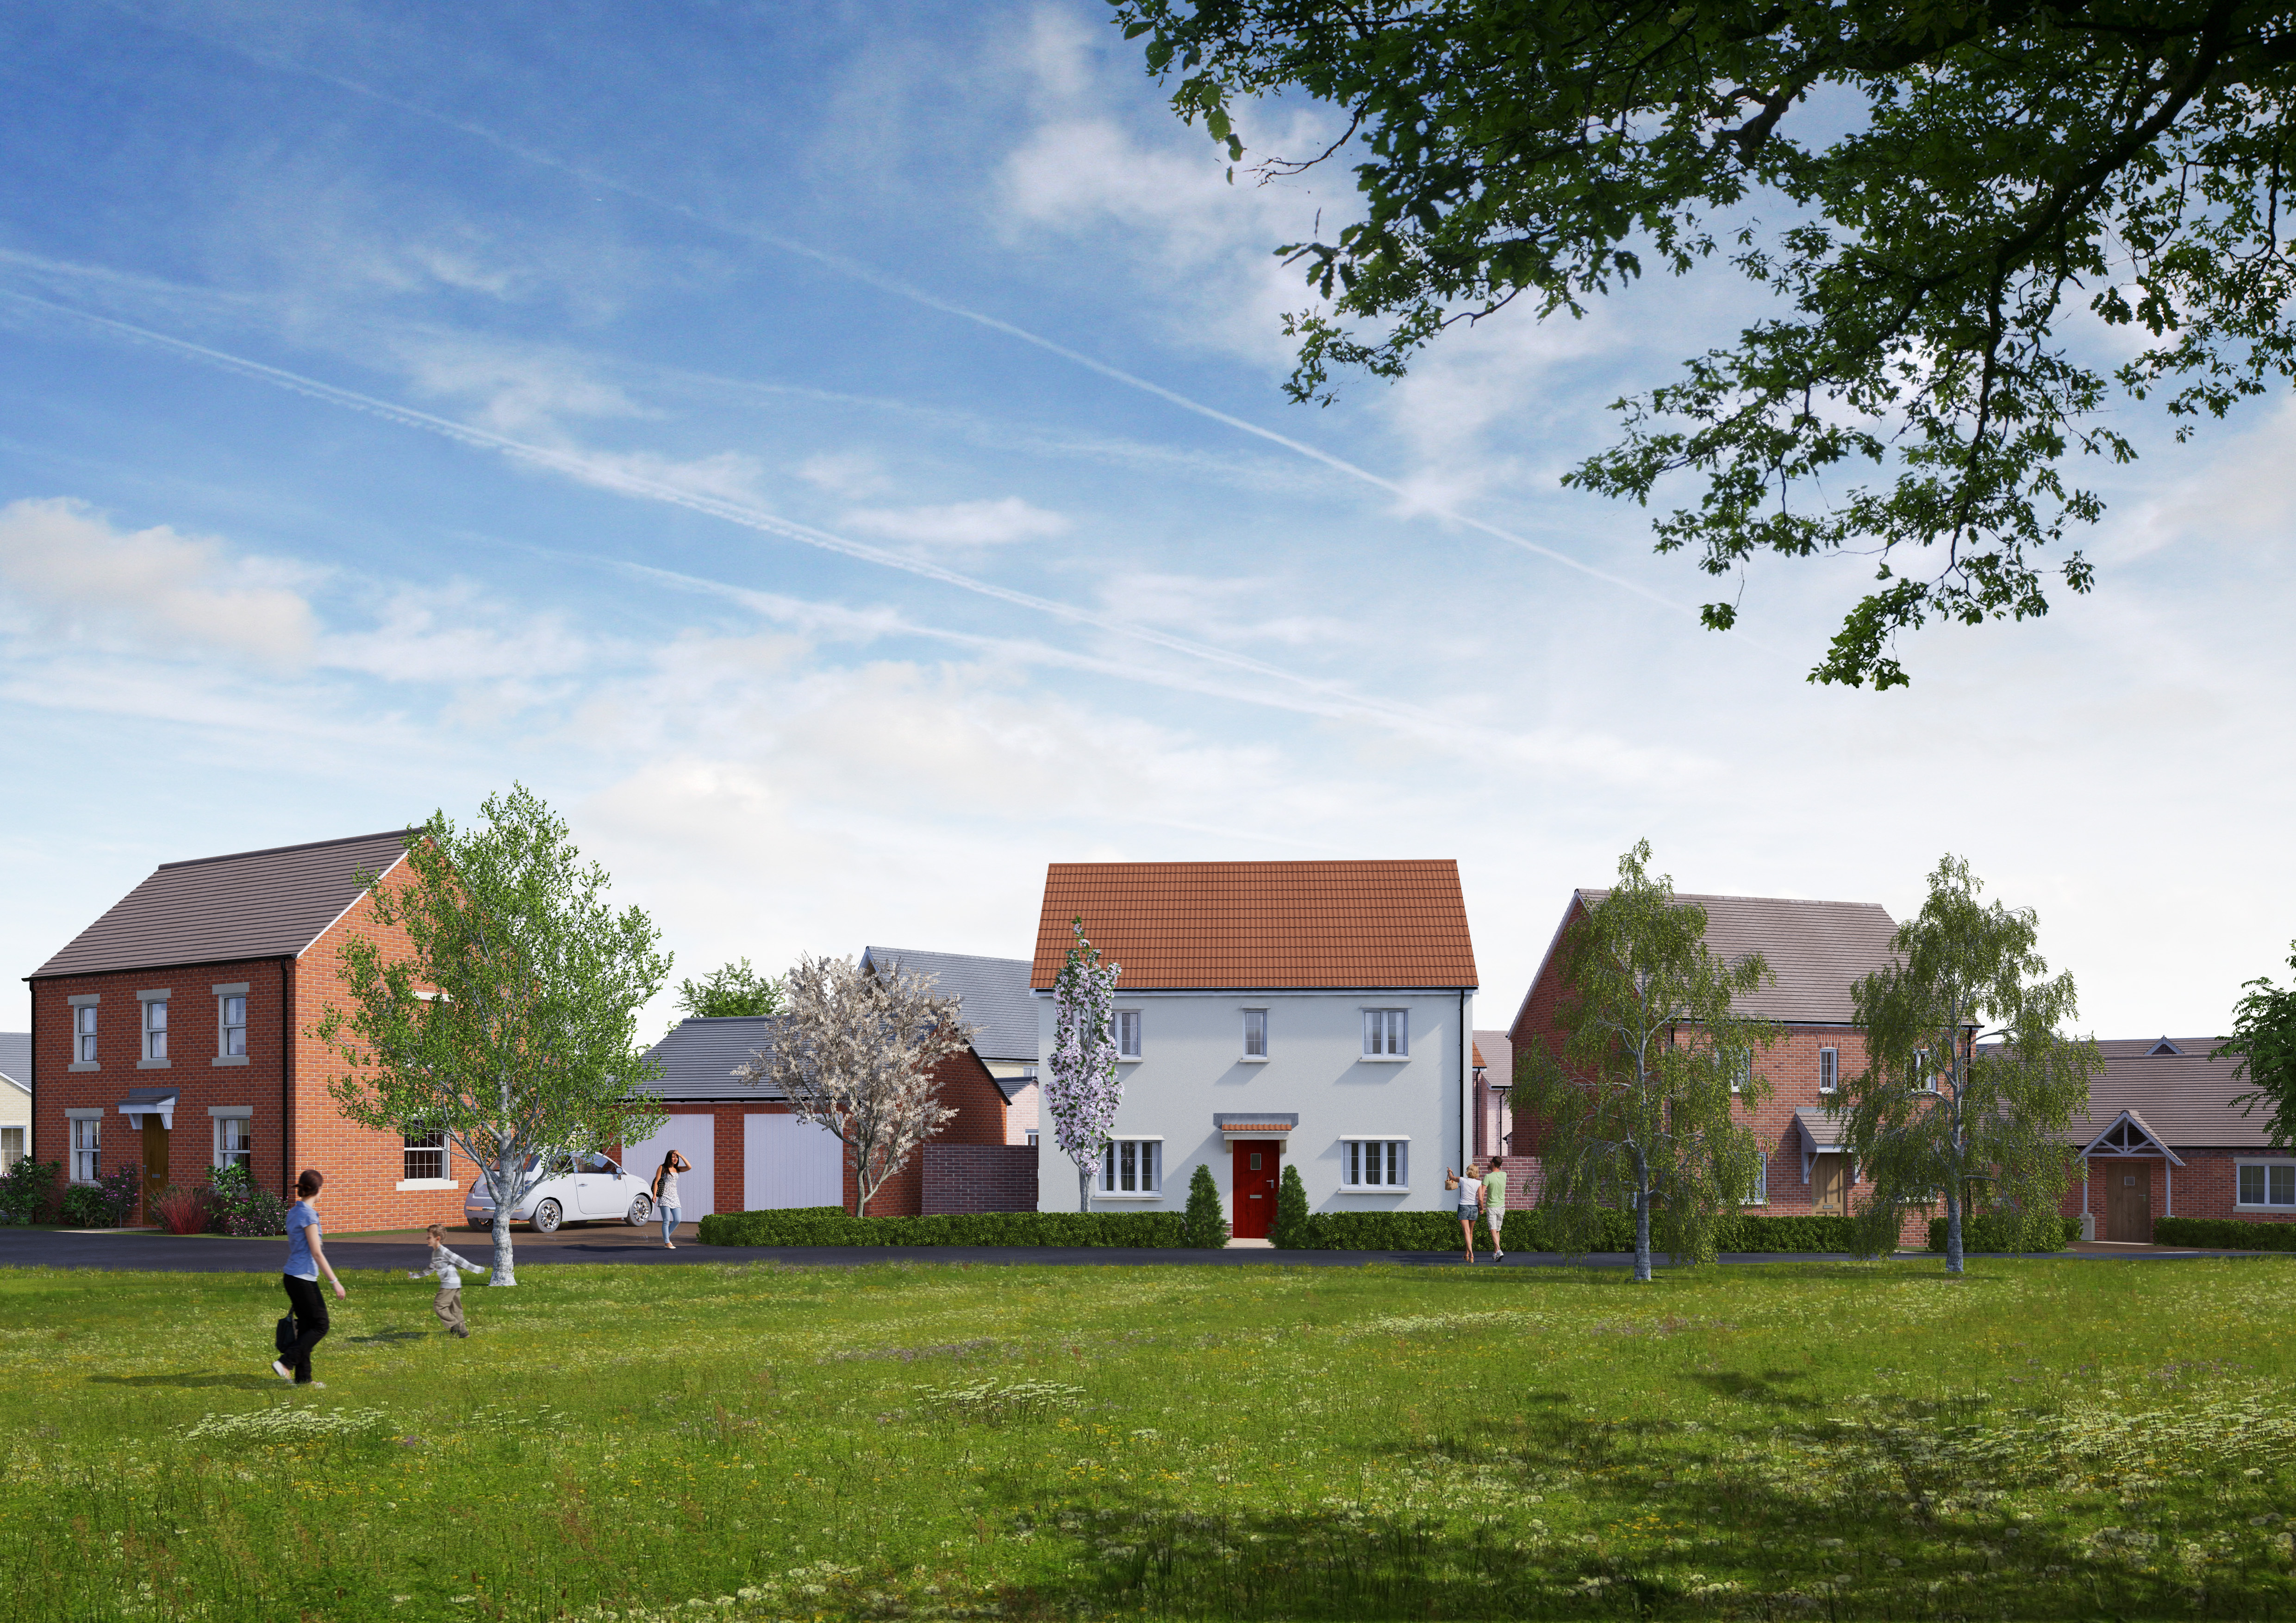 Meadow Vale, Buntingford, Hertfordshire